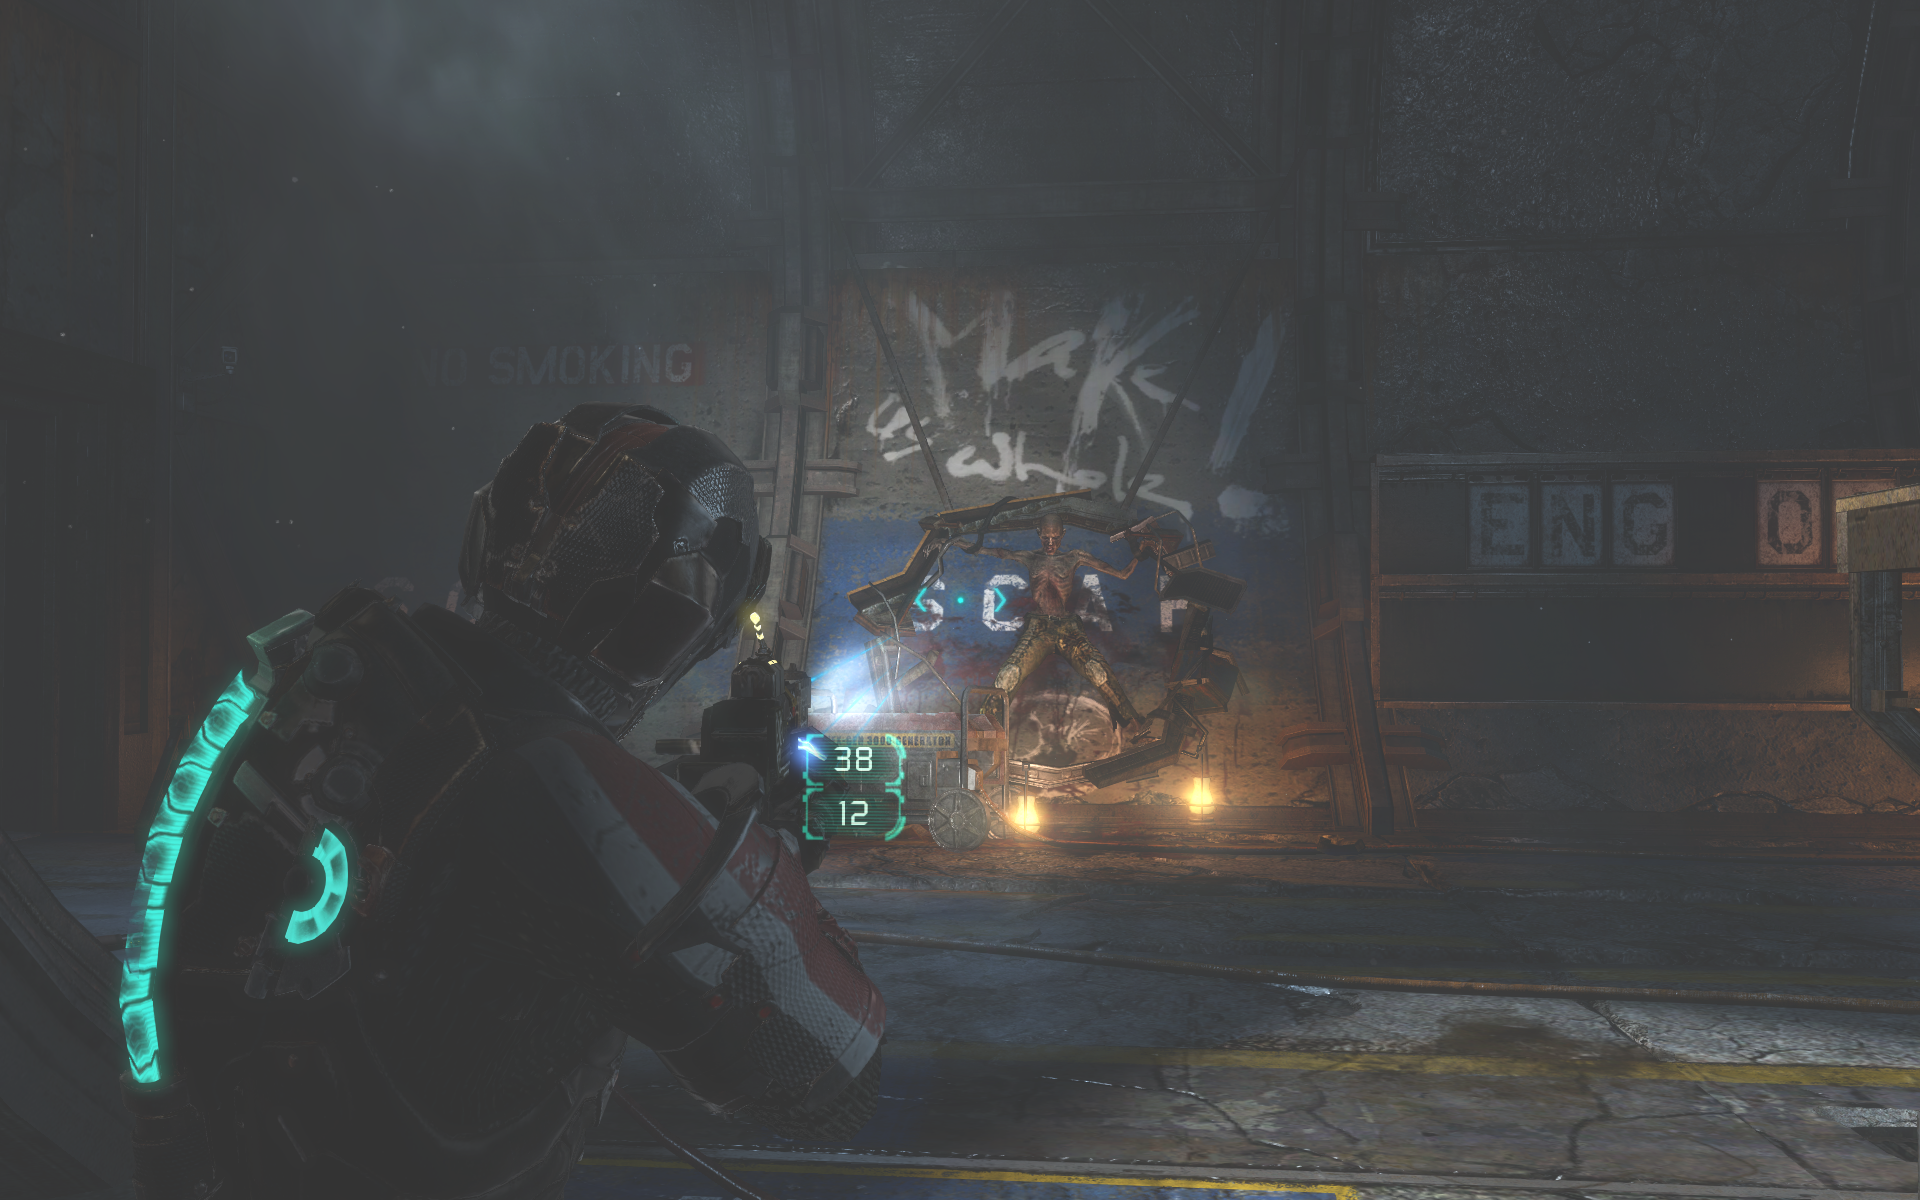 deadspace3 2013-03-05 01-07-08-28-crushed